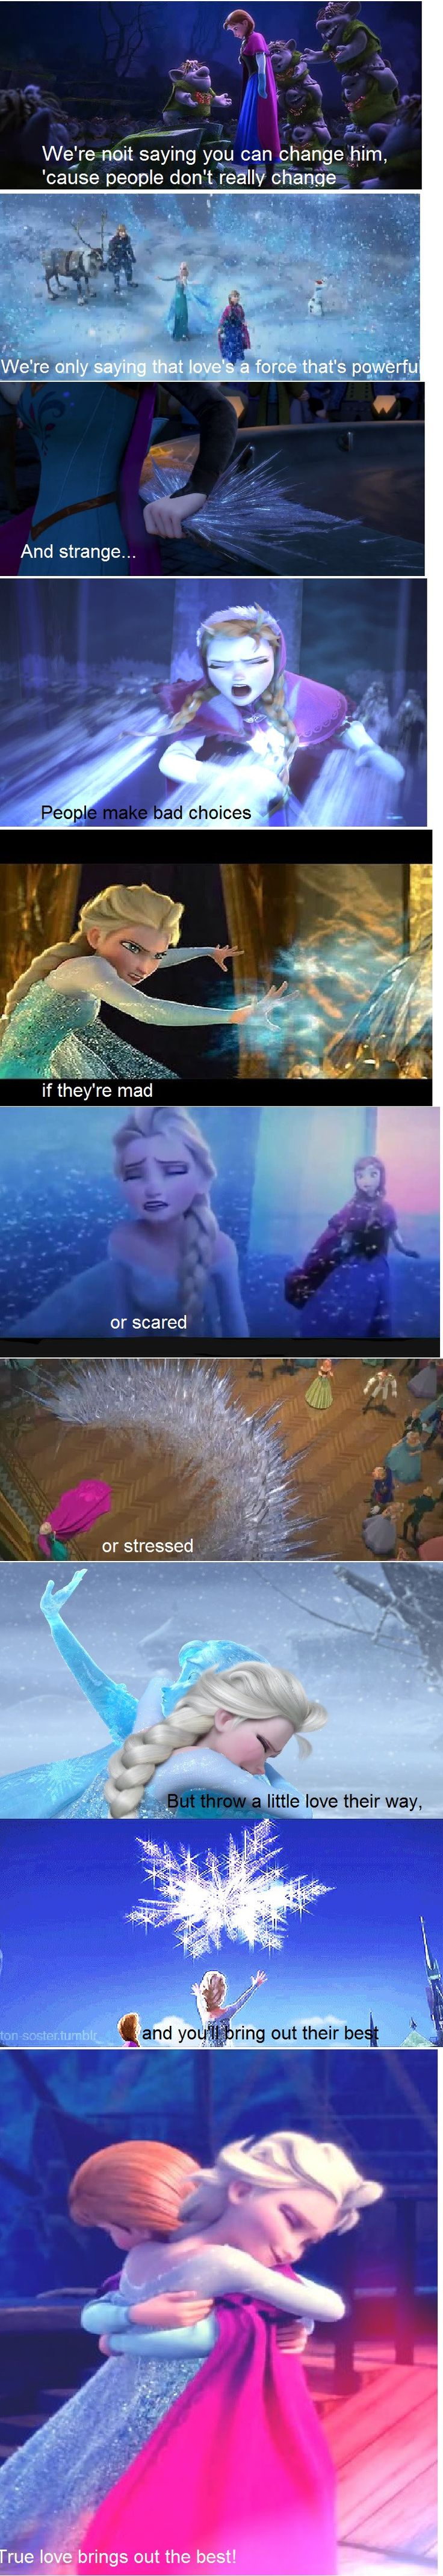 [Frozen] The Troll's Love Advice -- Elsa's Powers! - Imgur